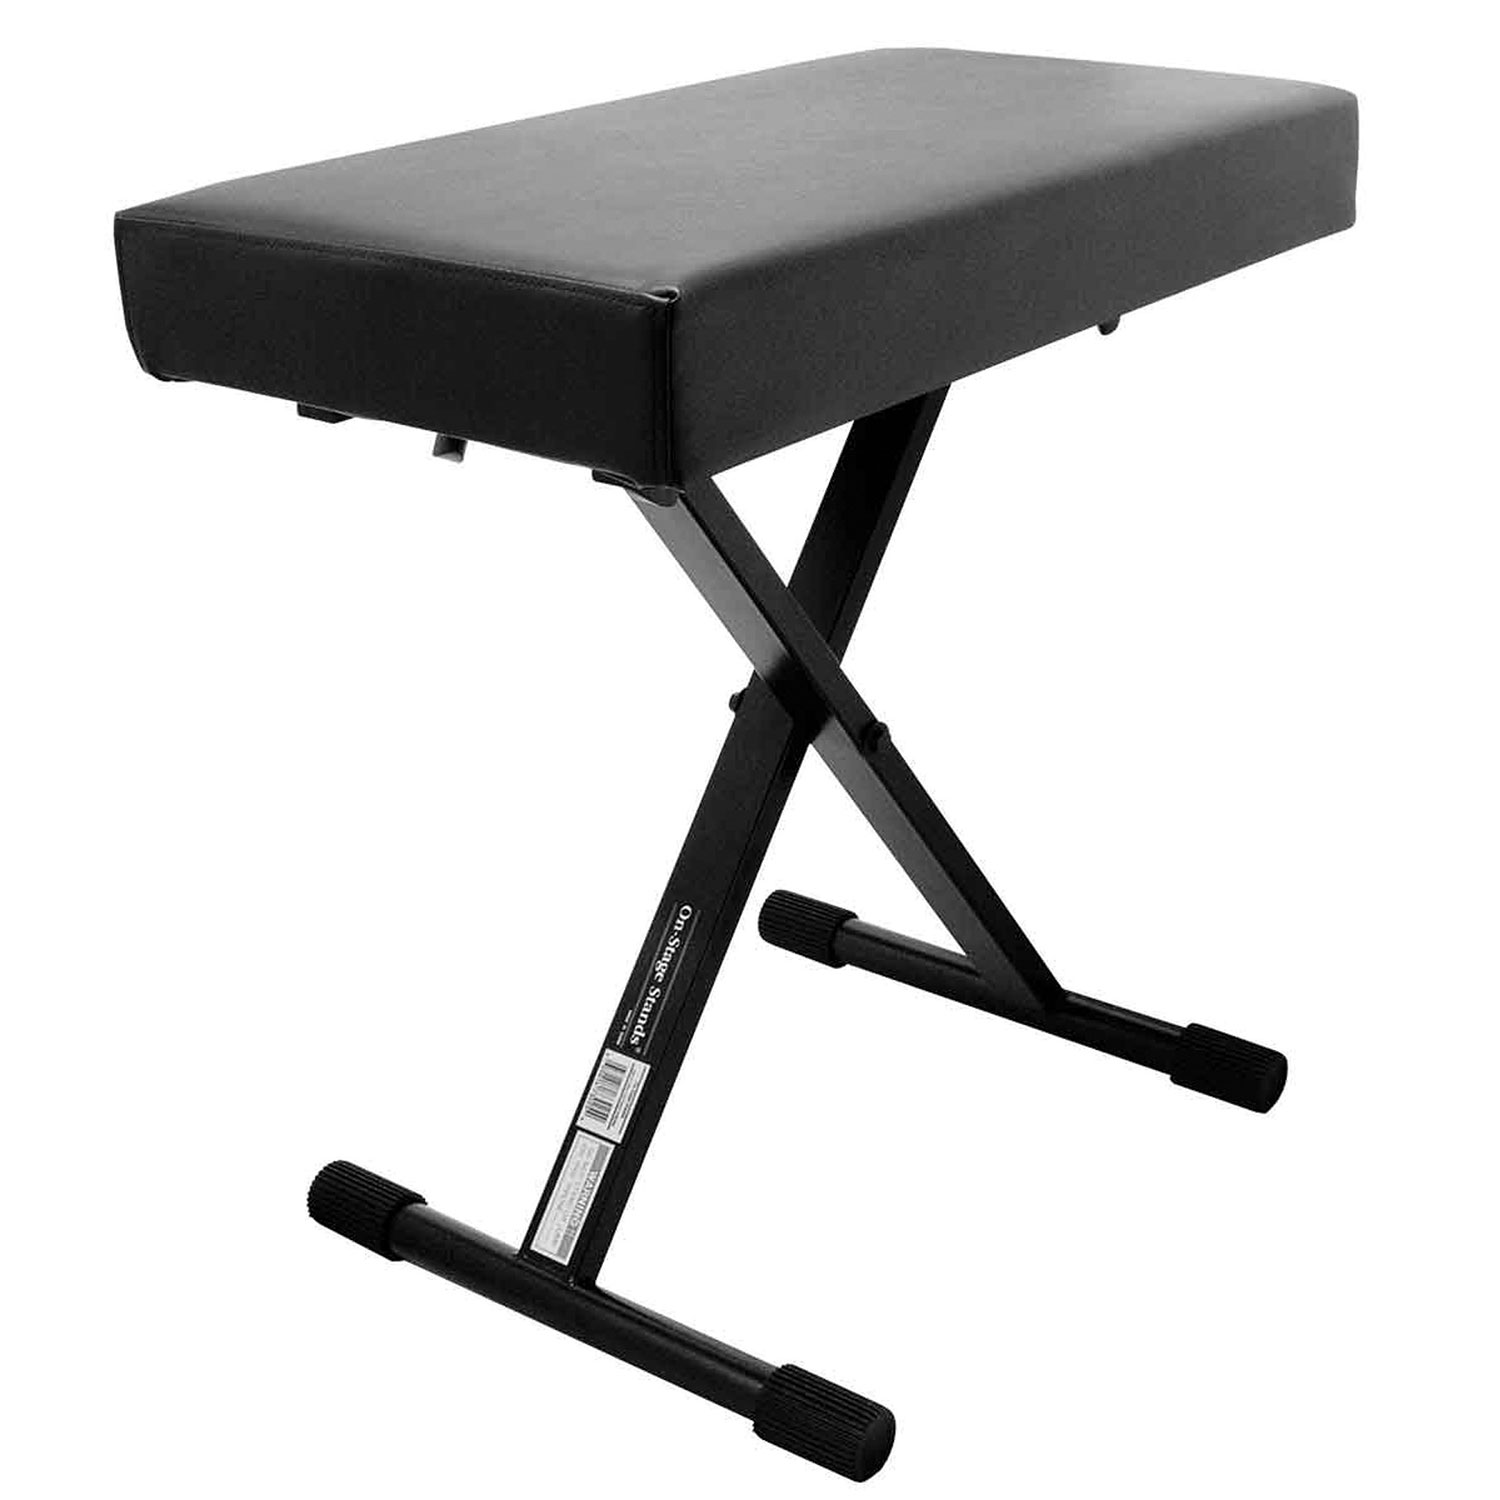 On-Stage 3-Position X-Style Keyboard Bench (KT7800)  Keyboard Benches - Best Buy Canada  sc 1 st  Best Buy Canada & On-Stage 3-Position X-Style Keyboard Bench (KT7800) : Keyboard ... islam-shia.org